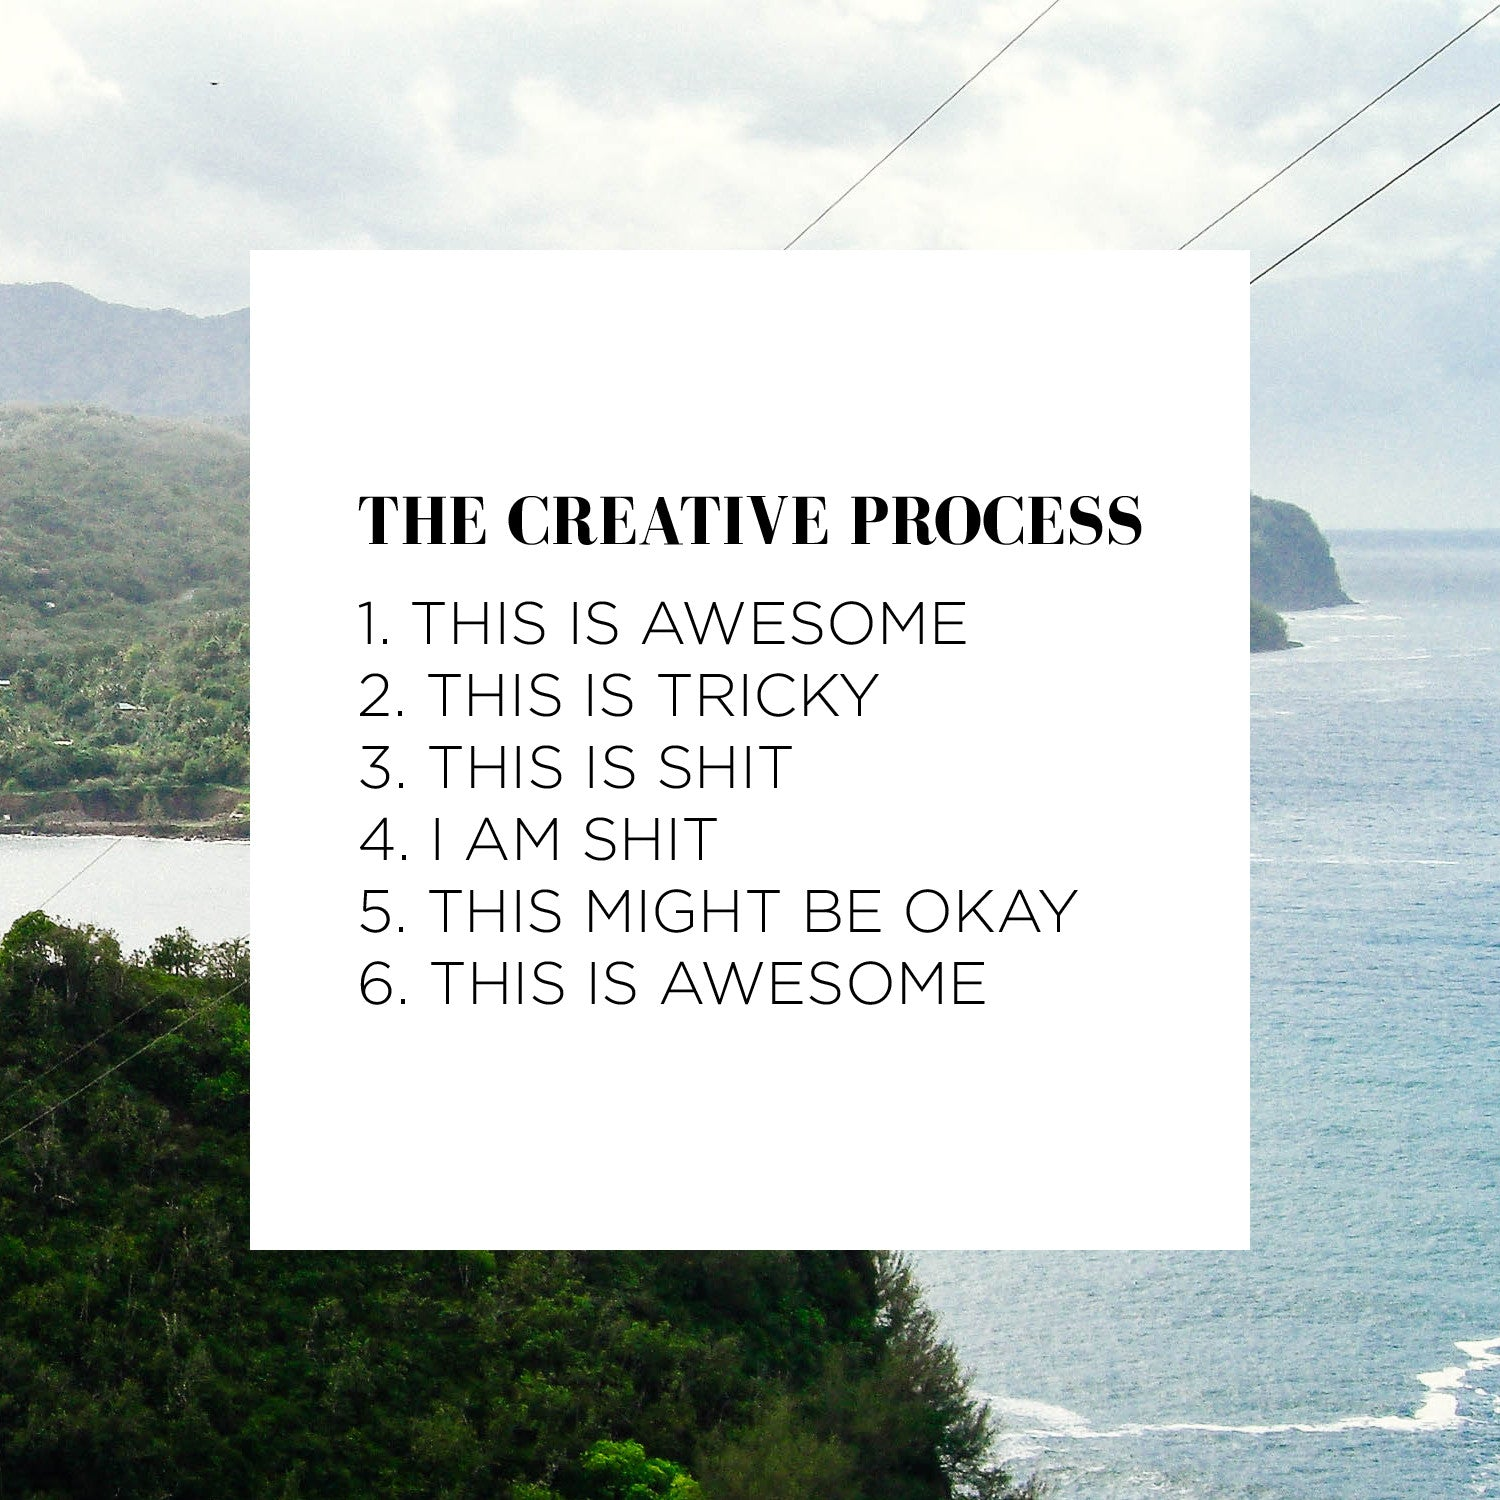 The Creative Process - Salt-shoppe.com